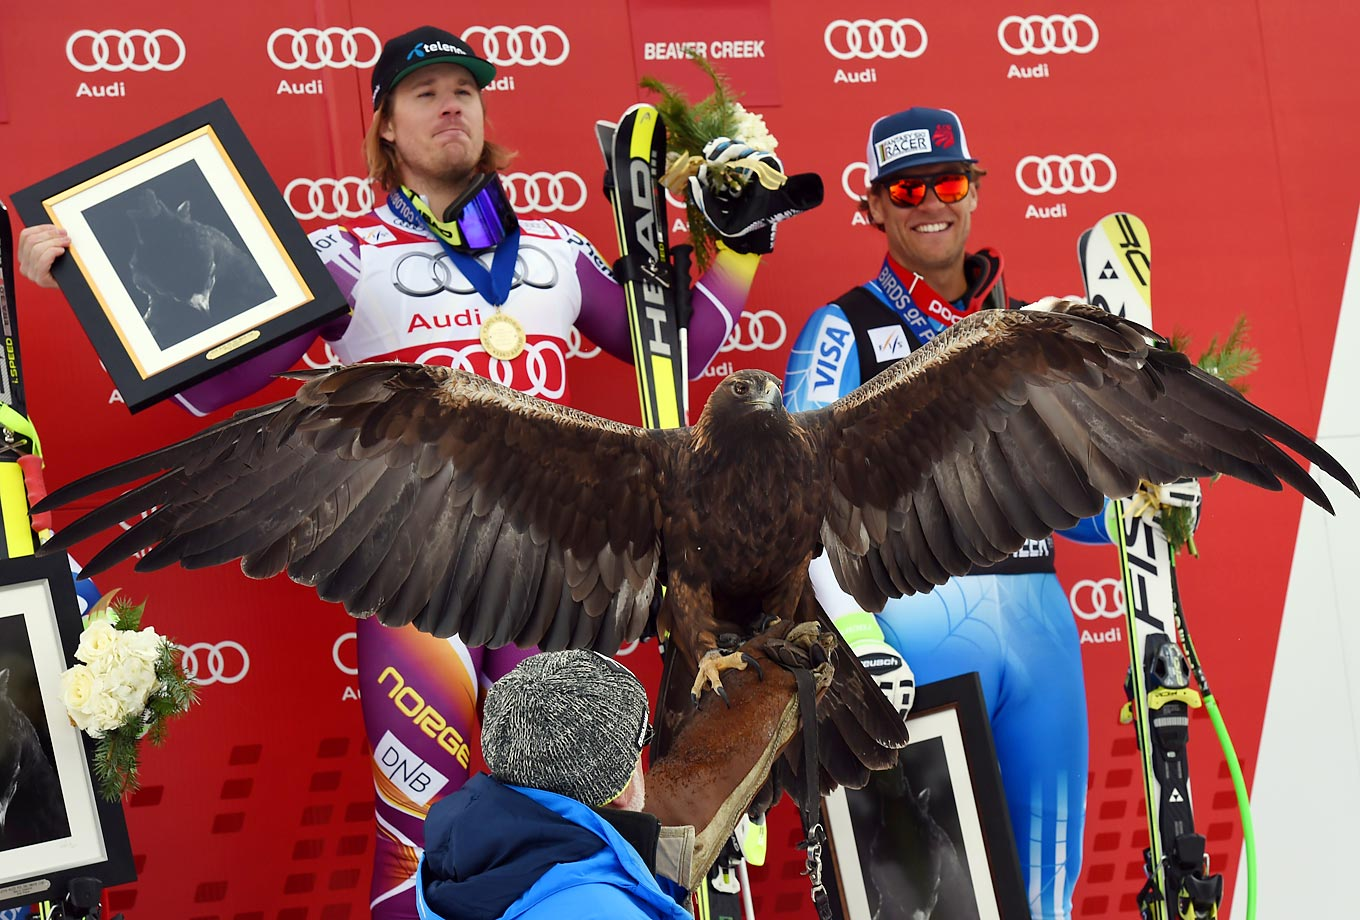 Not seemingly very surprised by a golden eagle, Kjetil Jansrud and Steven Nyman celebrate their victories in the 2014 Audi FIS Alpine Ski World Cup Men's Downhill in Beaver Creek, Colo.